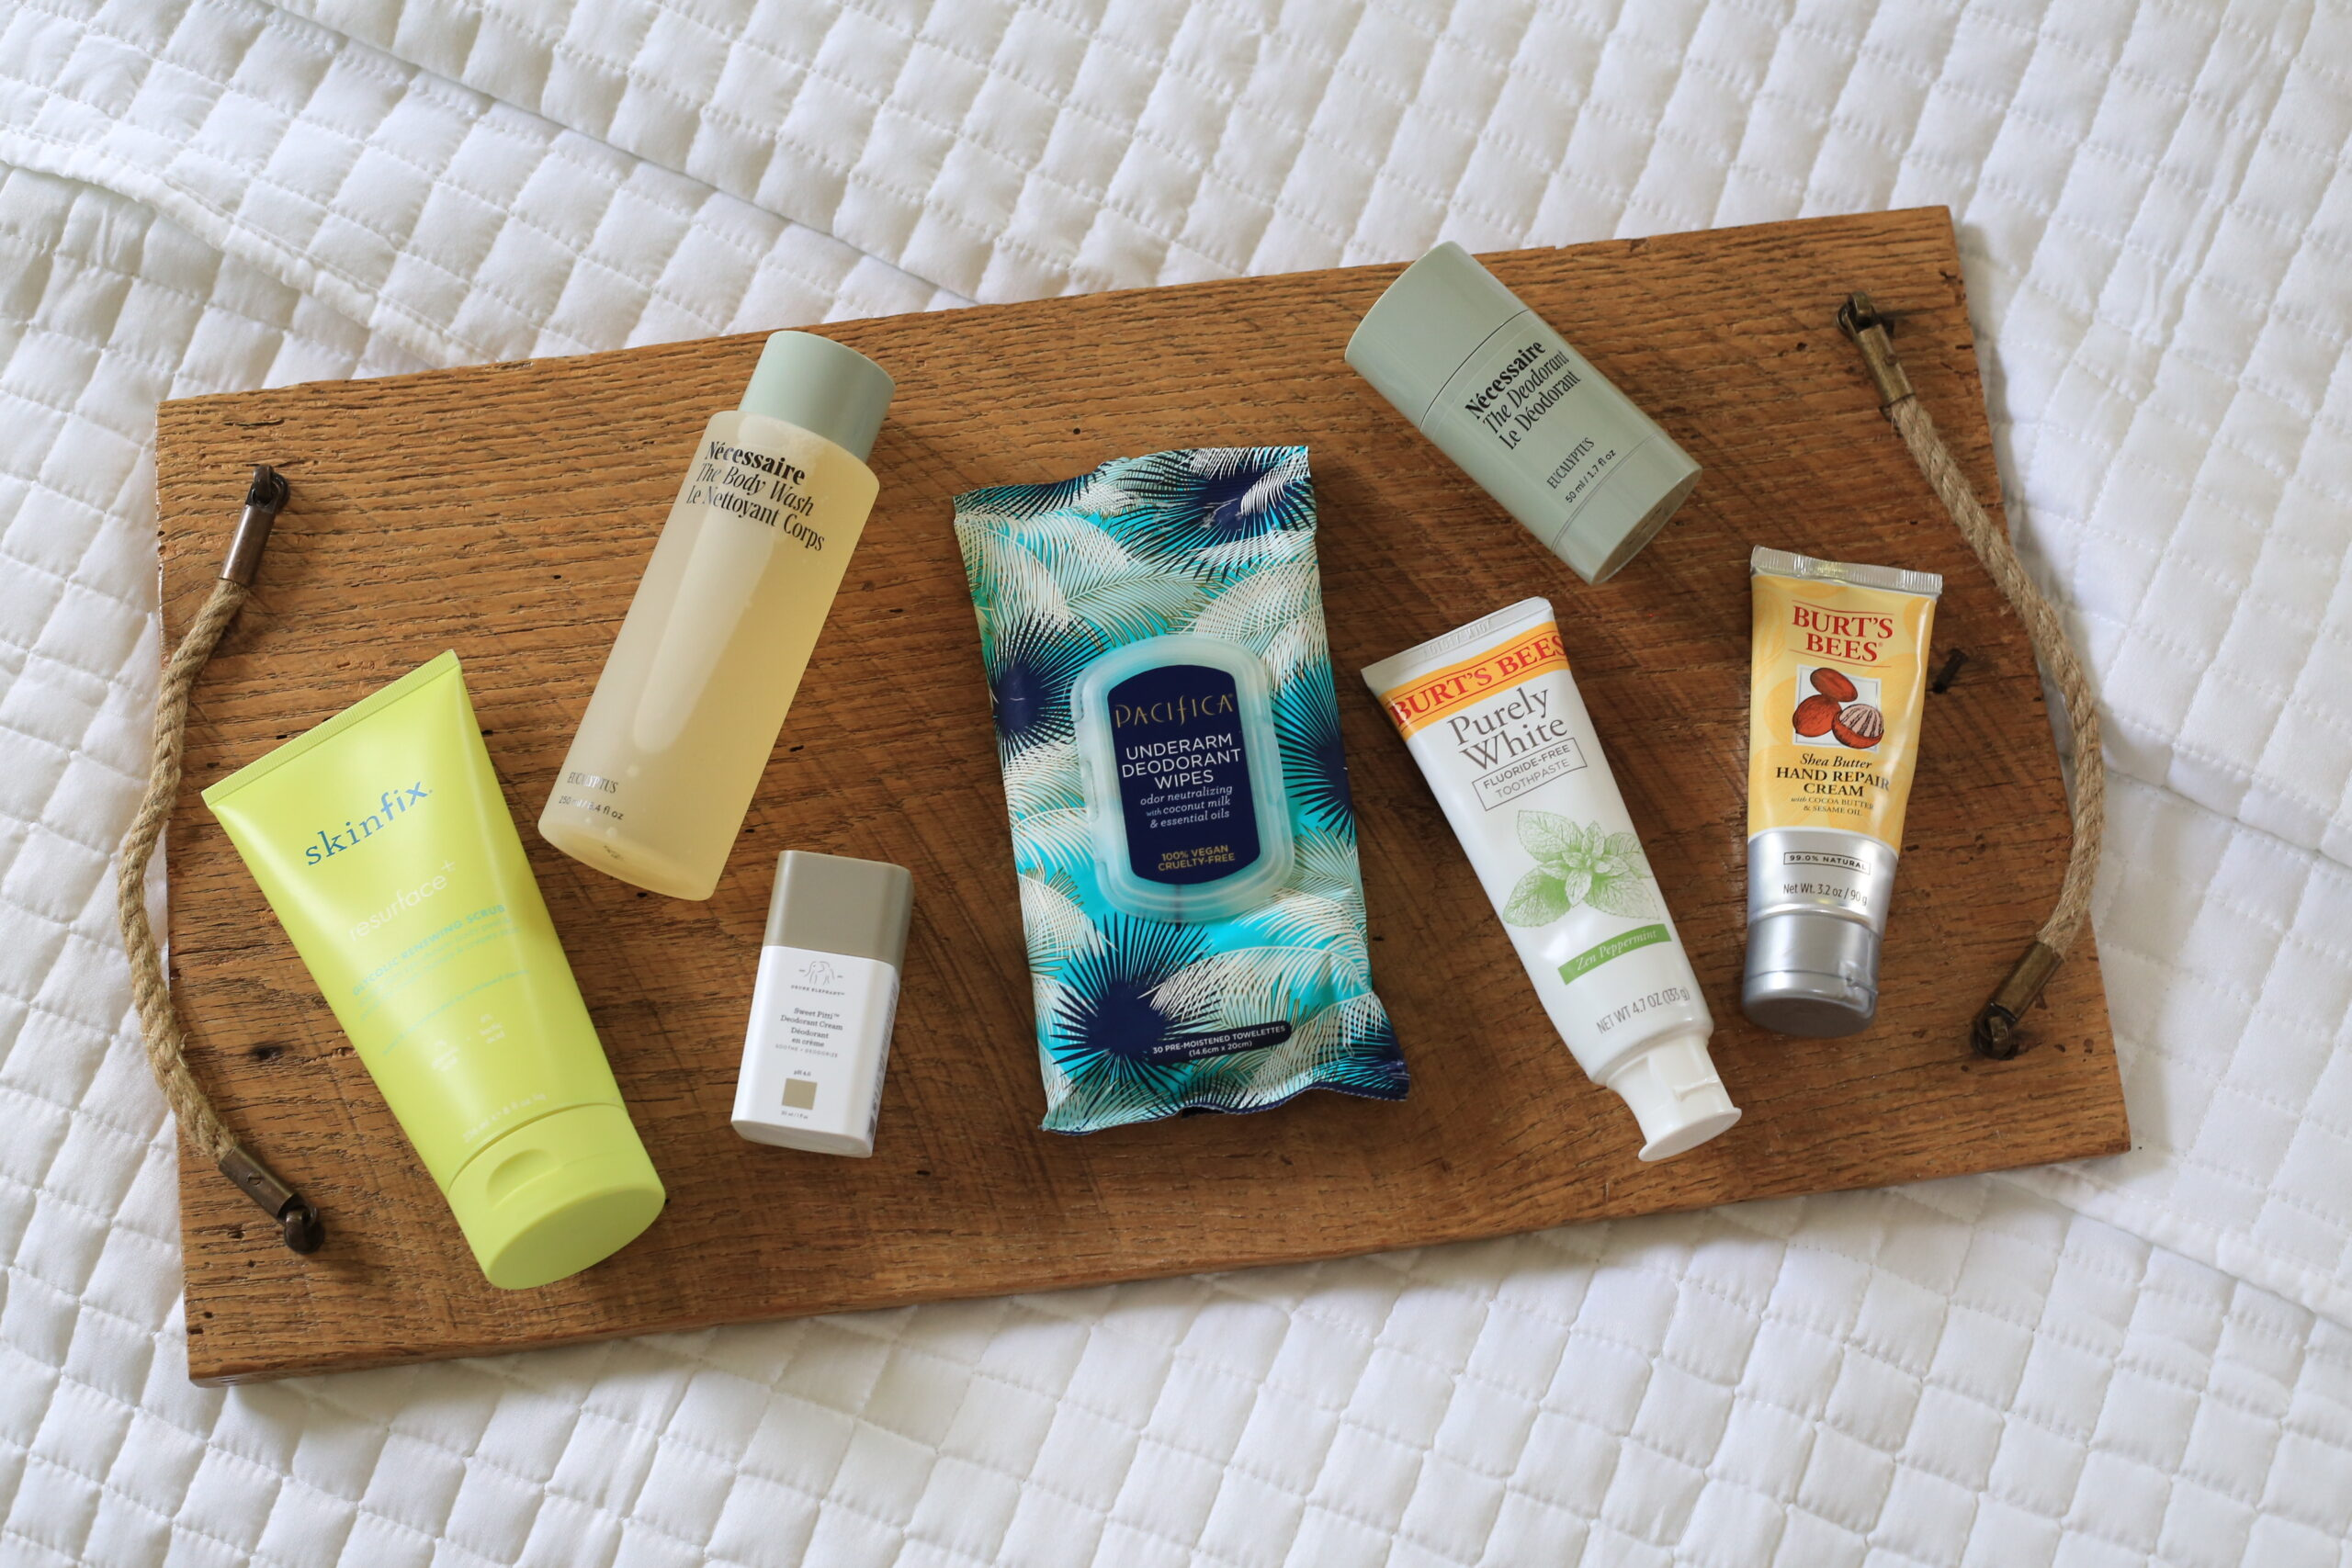 clean beauty, clean body products, clean toothpaste, clean deodorant, clean body wash